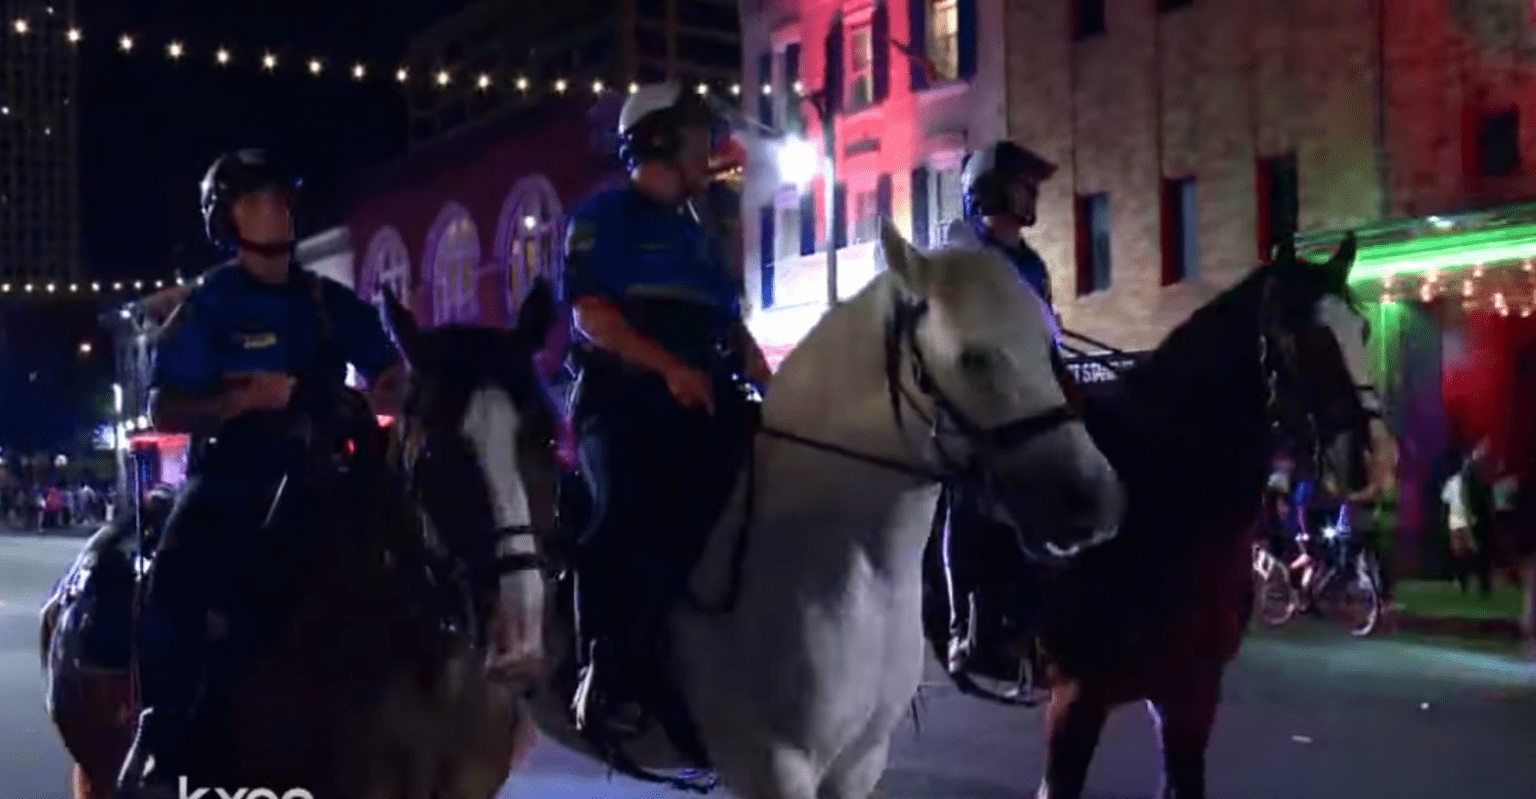 Austin City Council suggests eliminating police mounted patrol unit (even though they just helped stop riots)